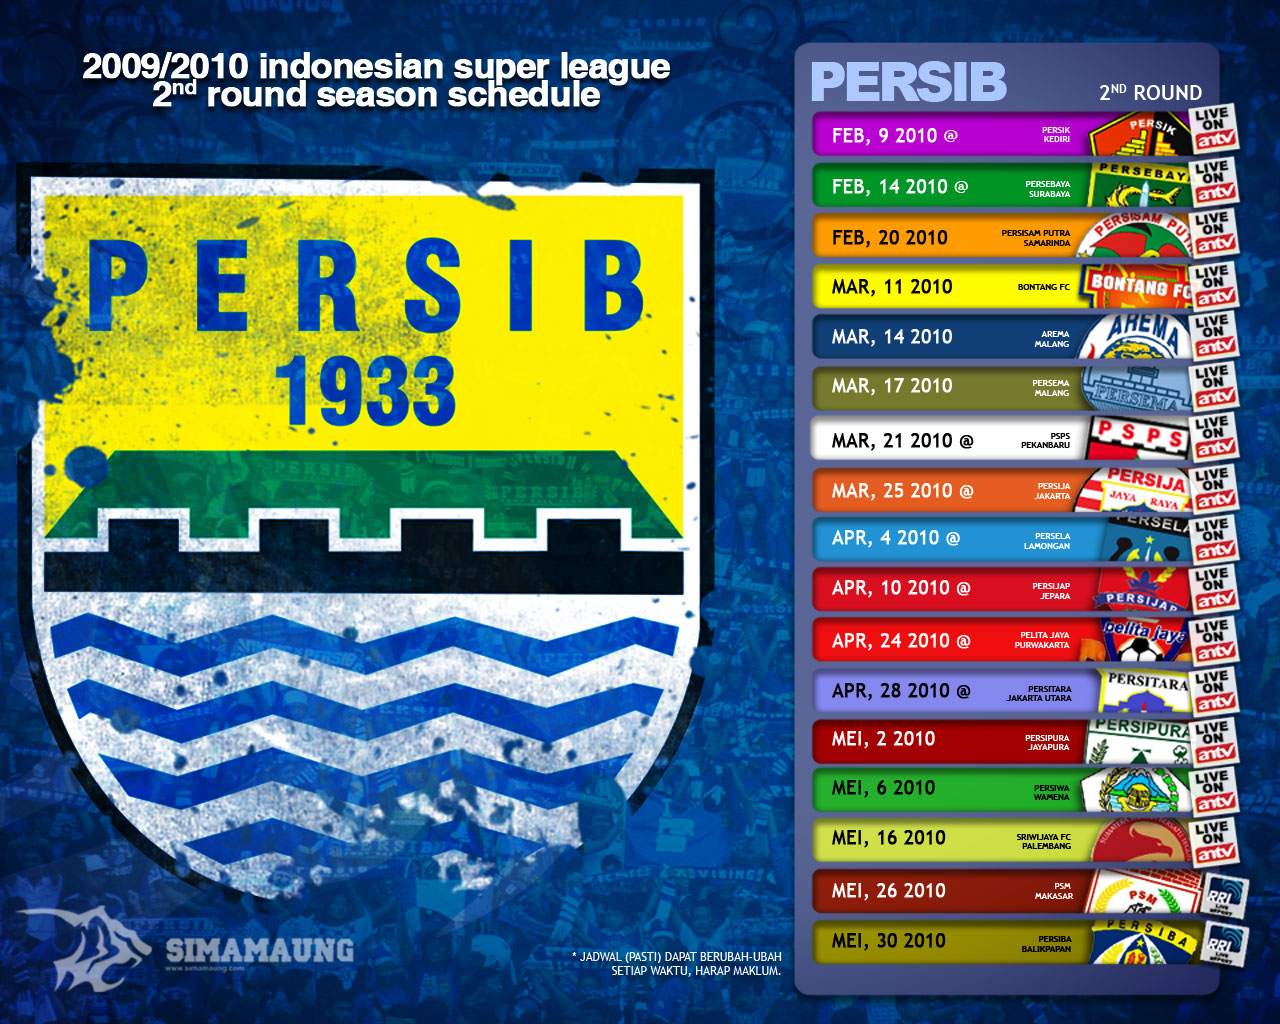 Wallpaper Jadwal Persib 2nd Round